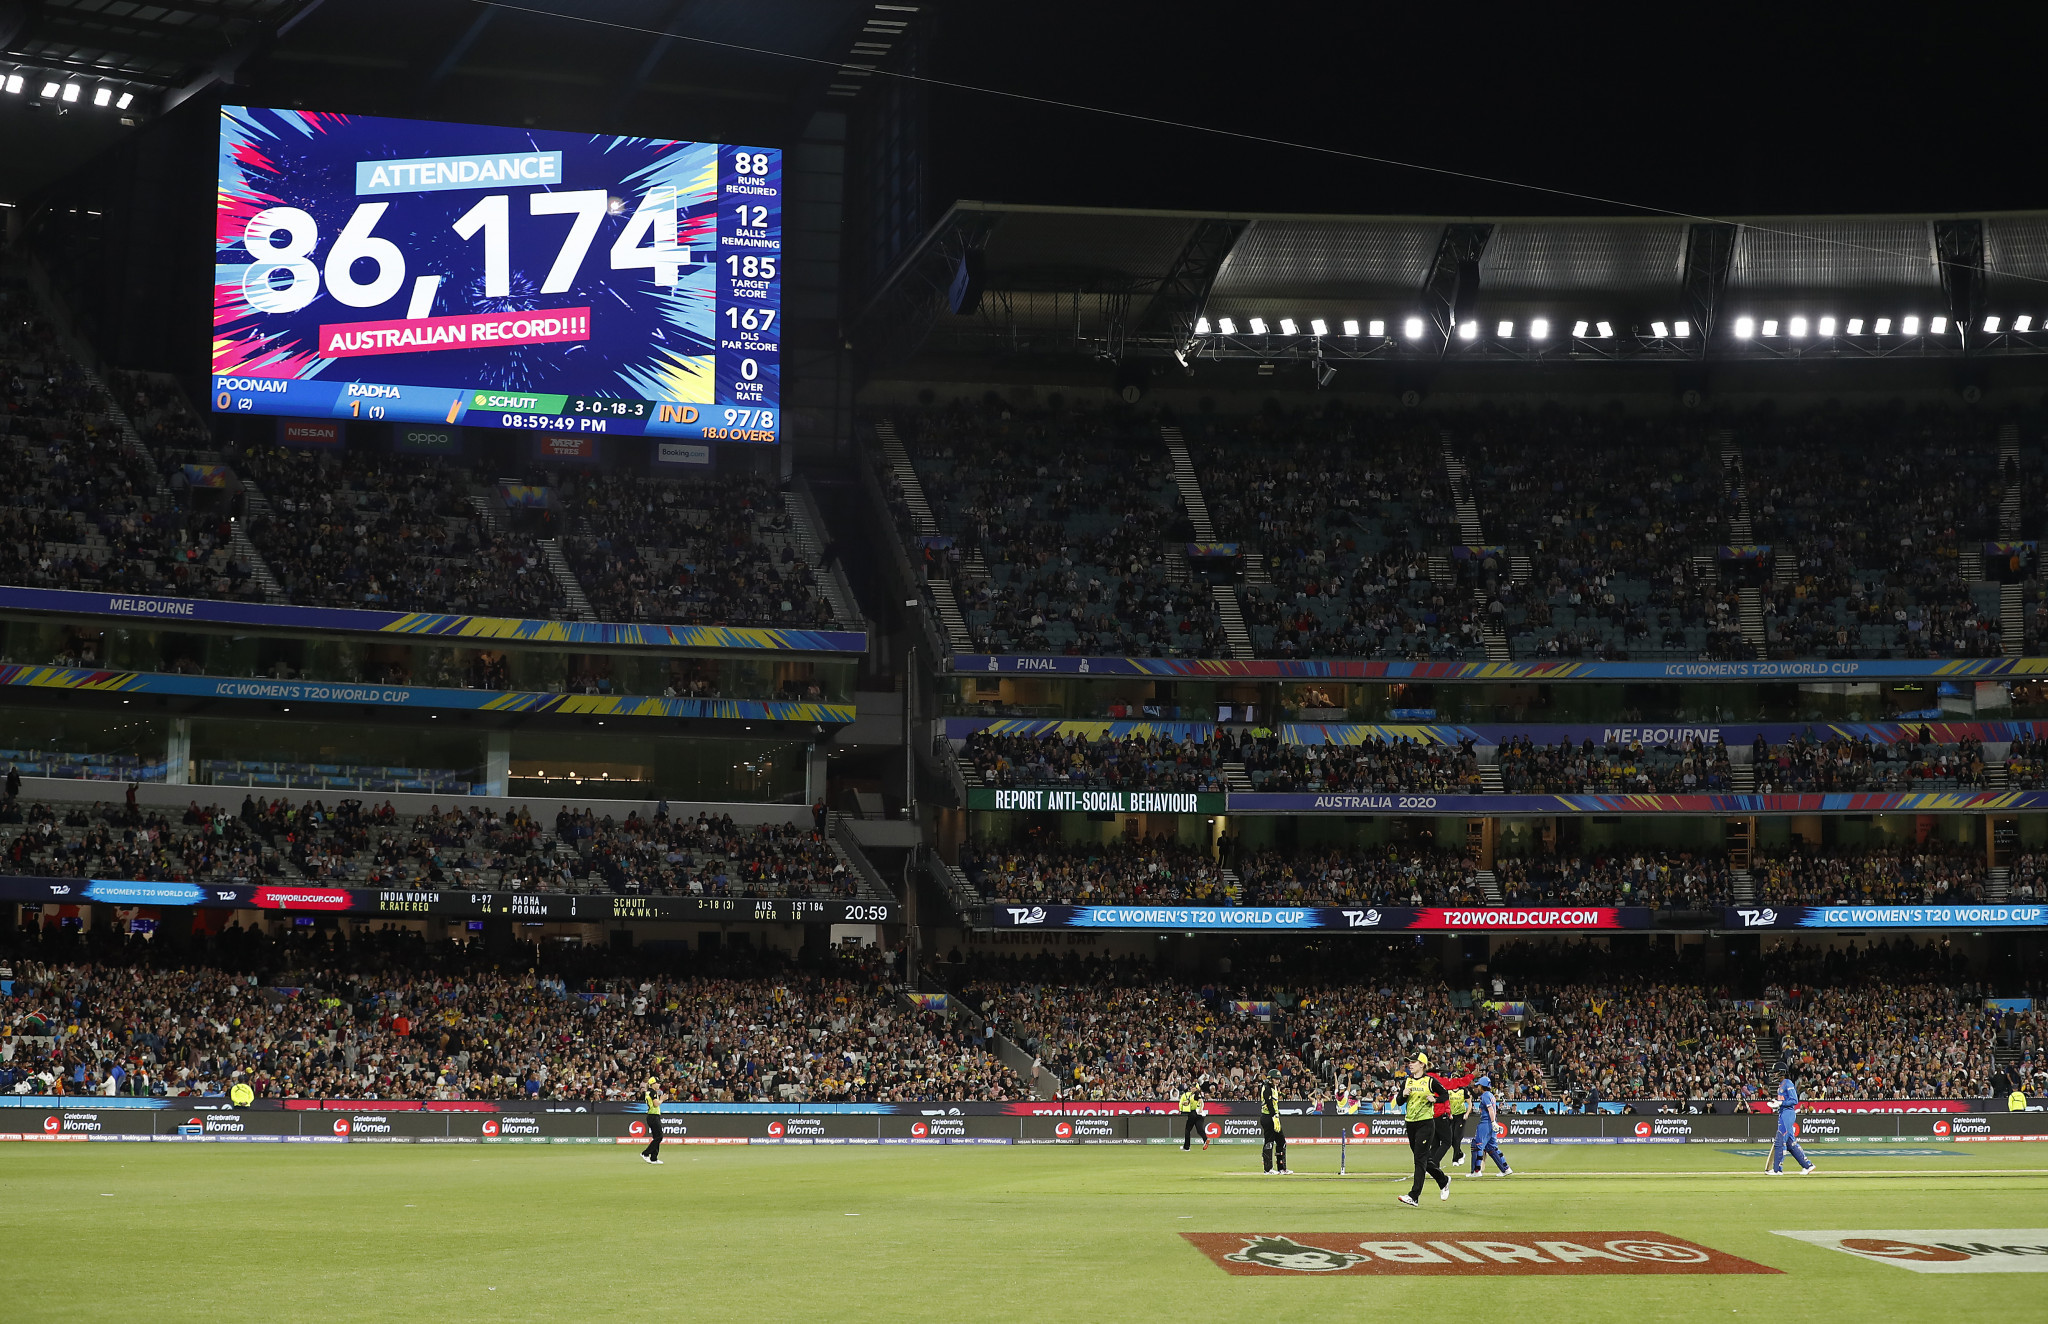 The Women's T20 World Cup final was held in front of 86,174 spectators at Melbourne Cricket Ground ©Getty Images